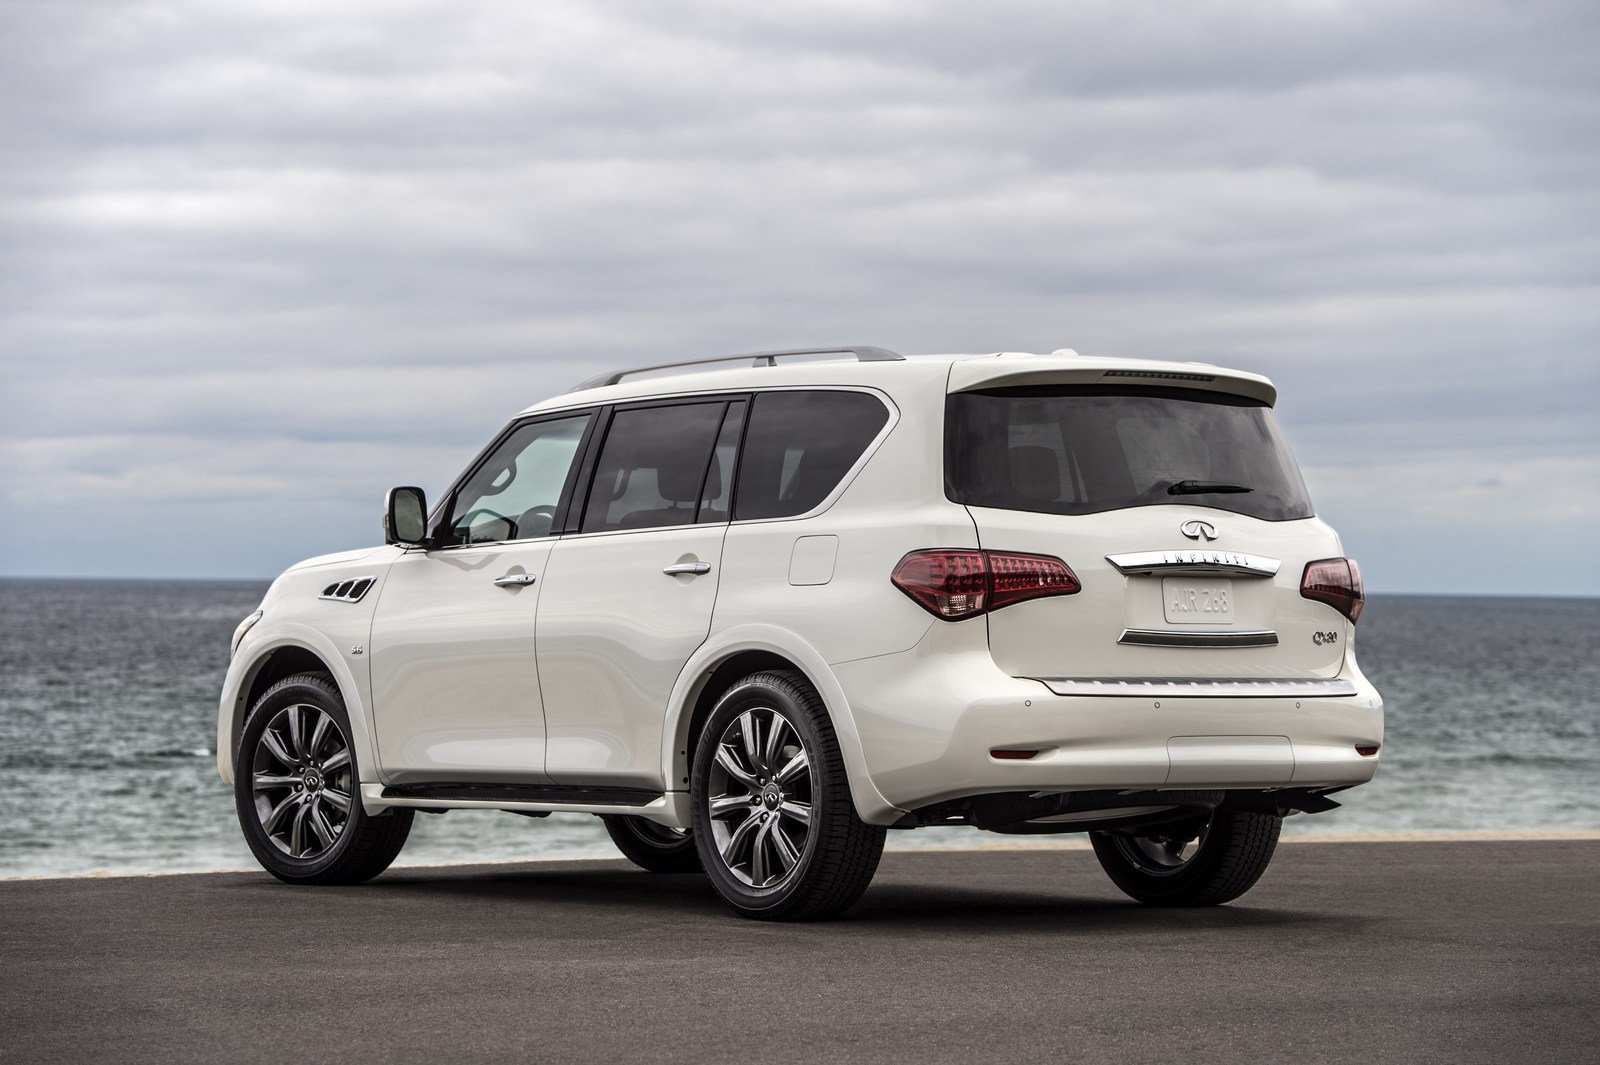 2017 infiniti qx80 signature edition picture 704715 car review top speed